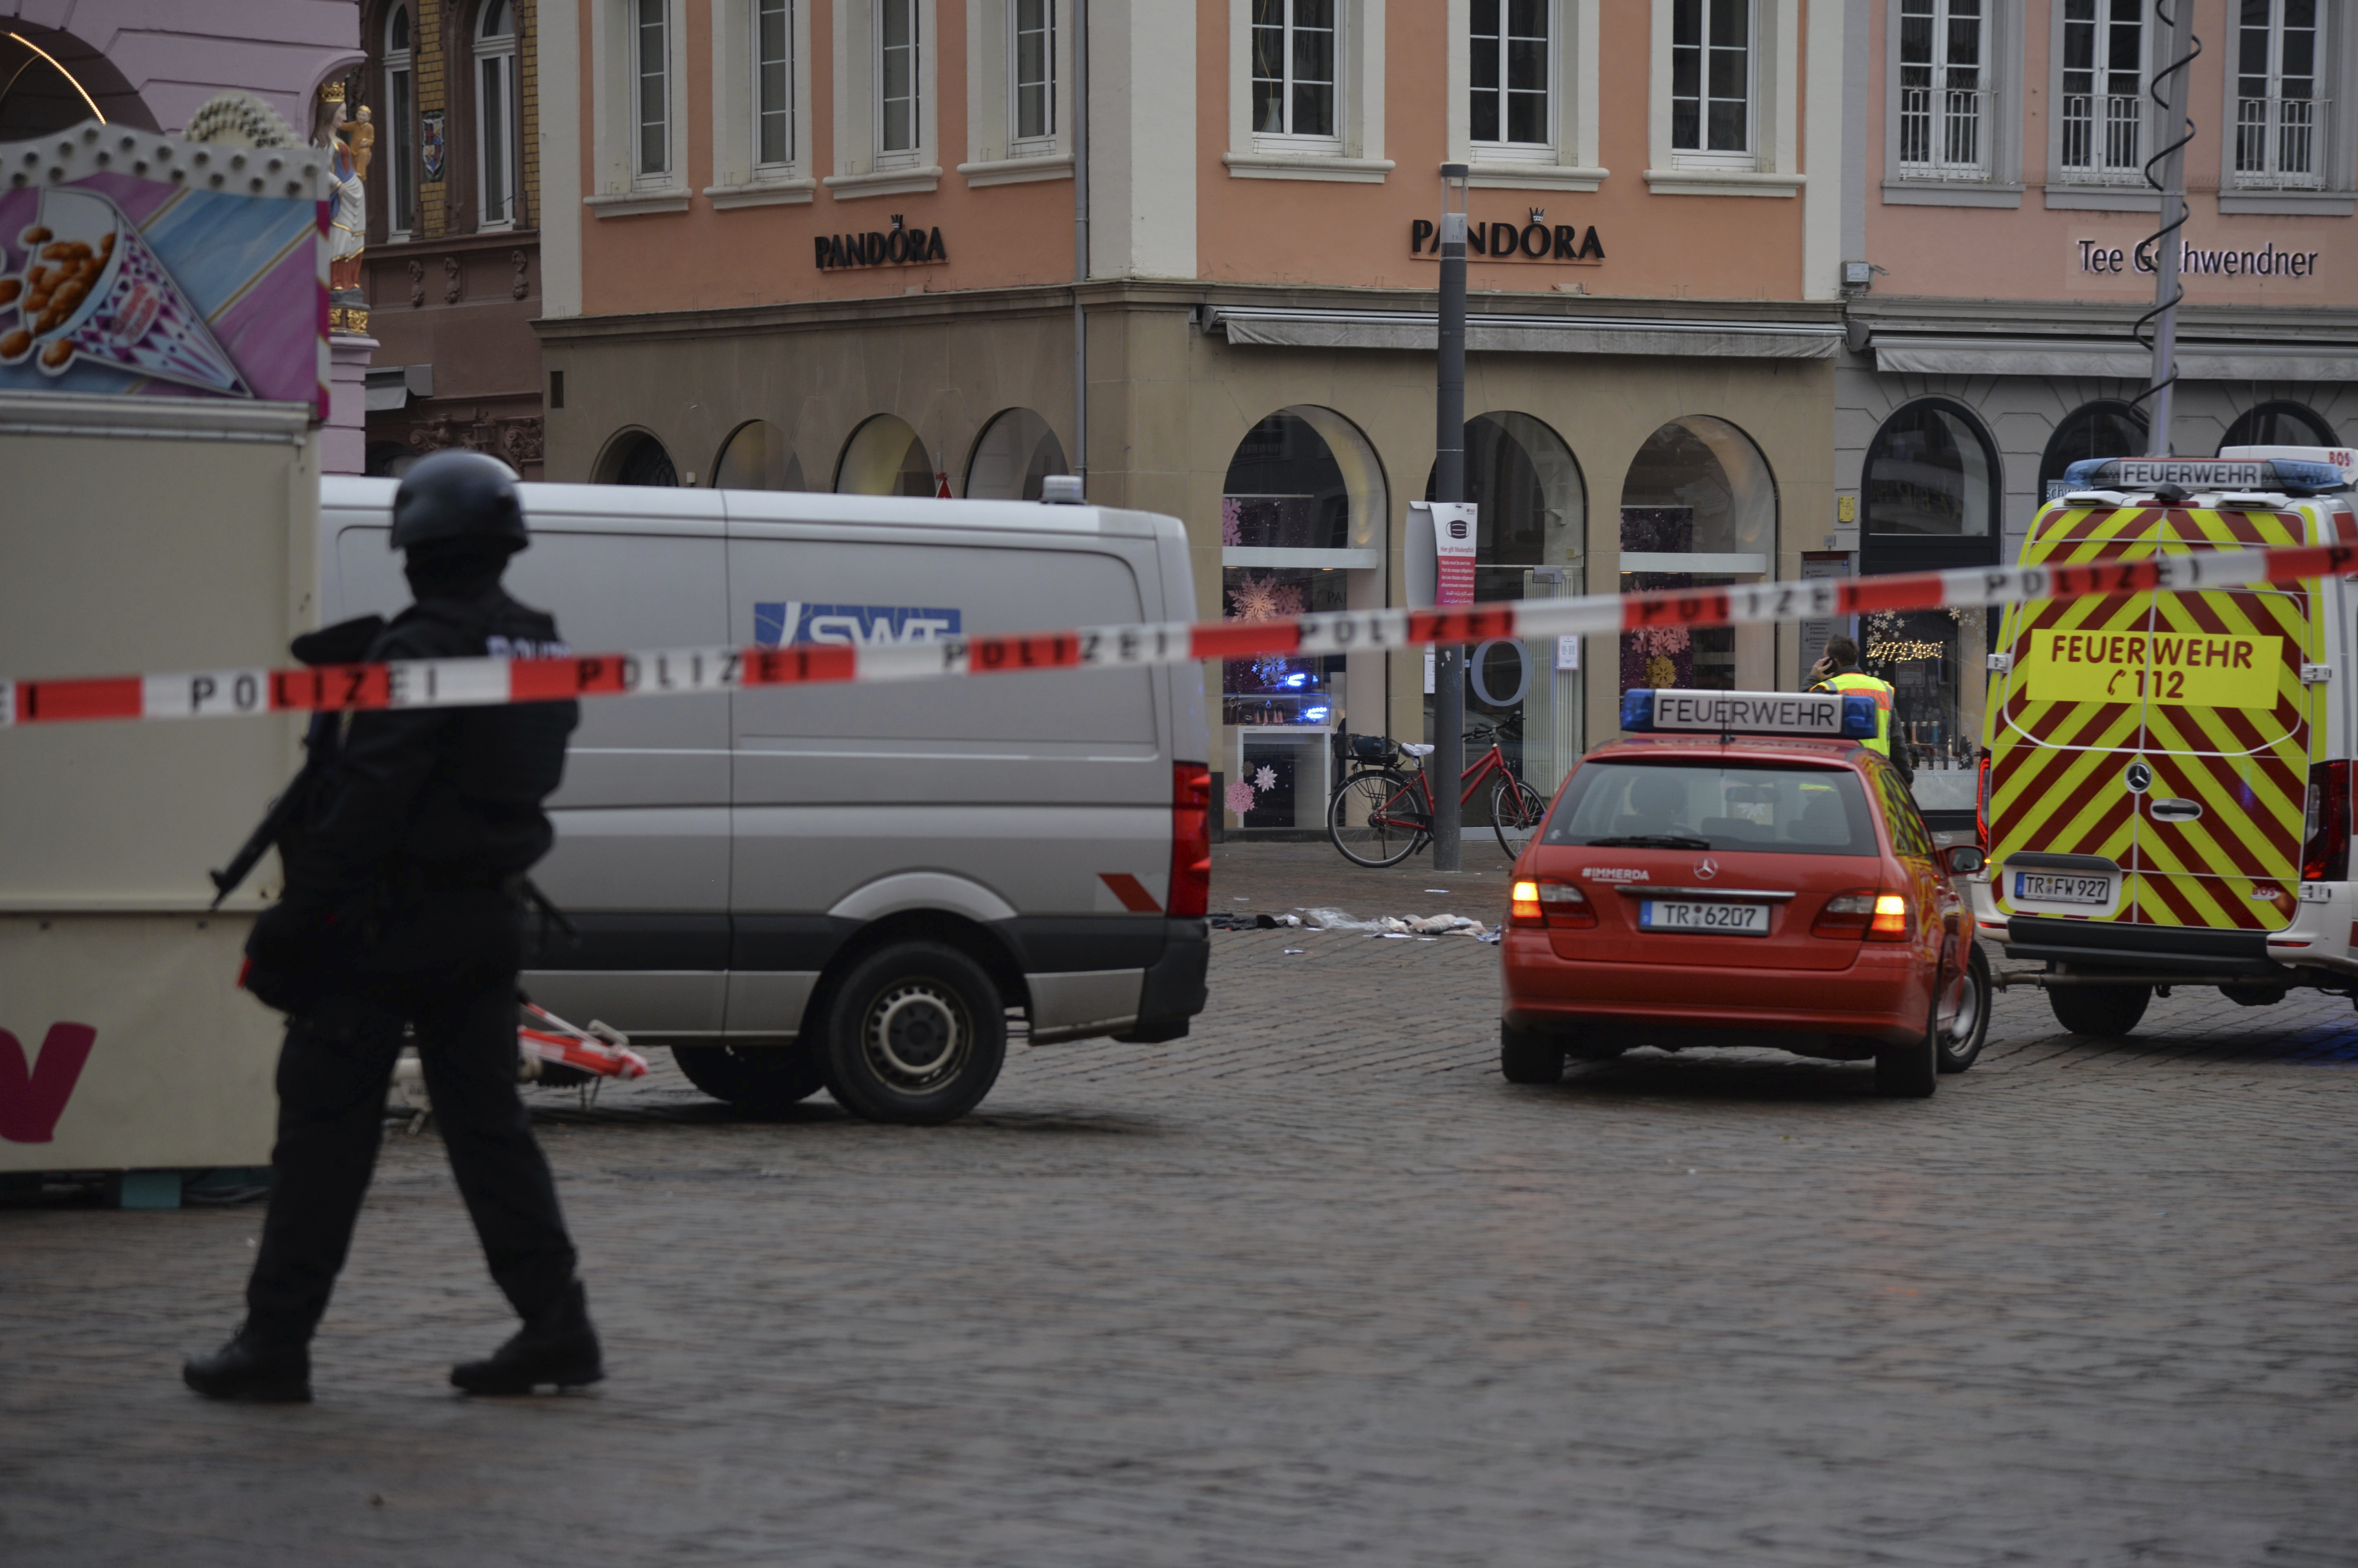 A square is blocked by the police in Trier, Germany, Tuesday, Dec. 1, 2020.